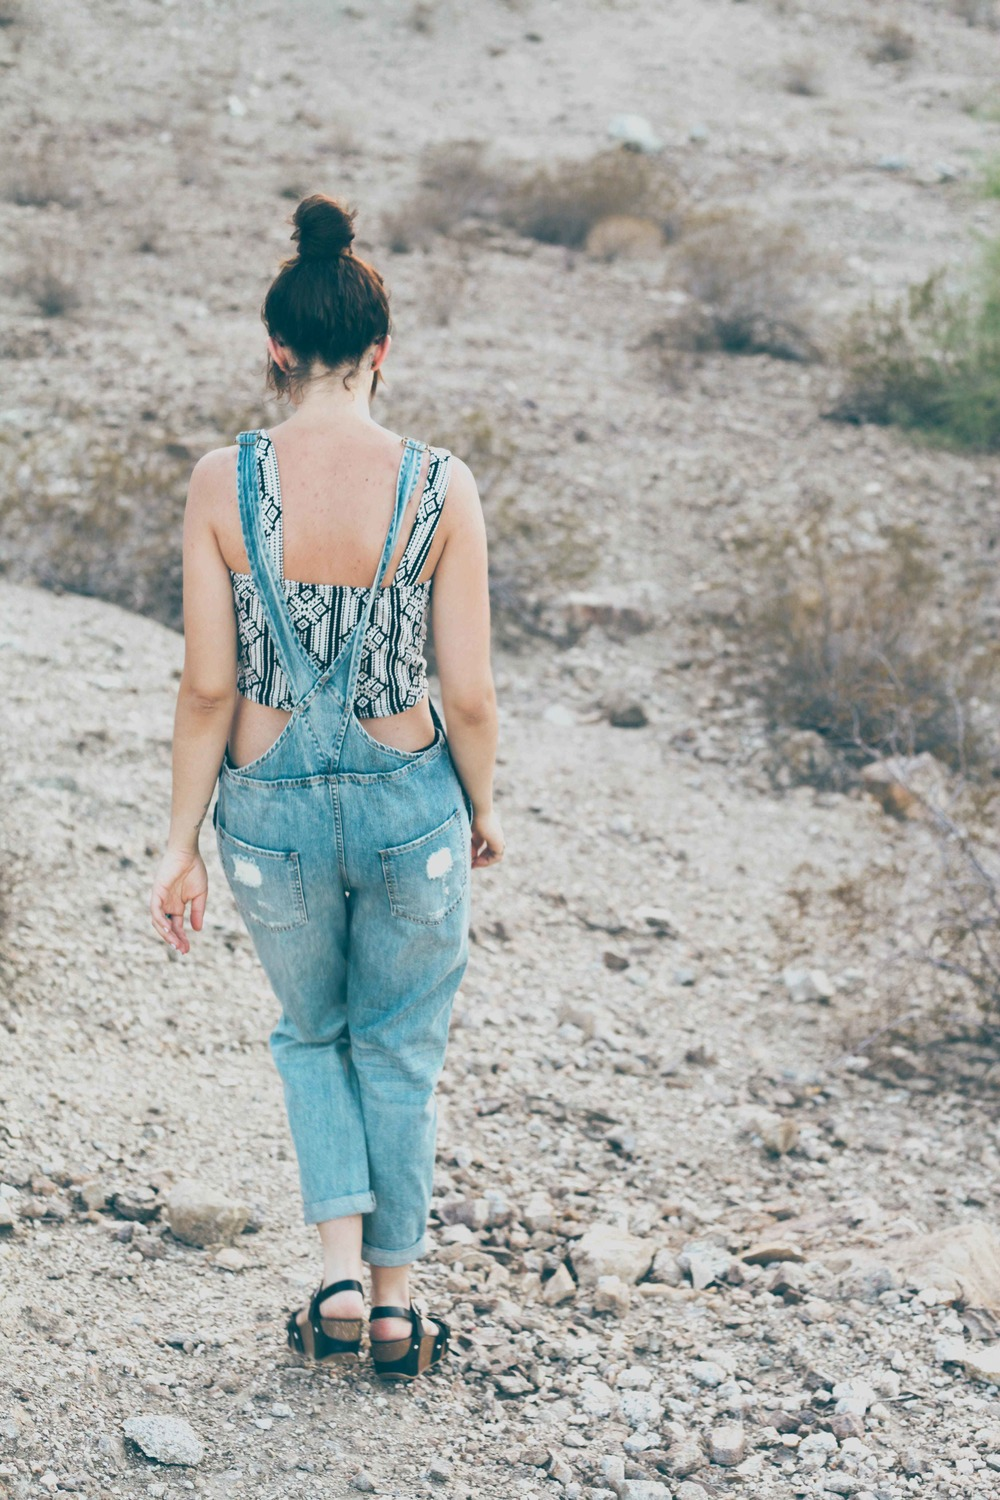 summer_desert_overalls_style_fashion_treasuresandtravels-12.jpg